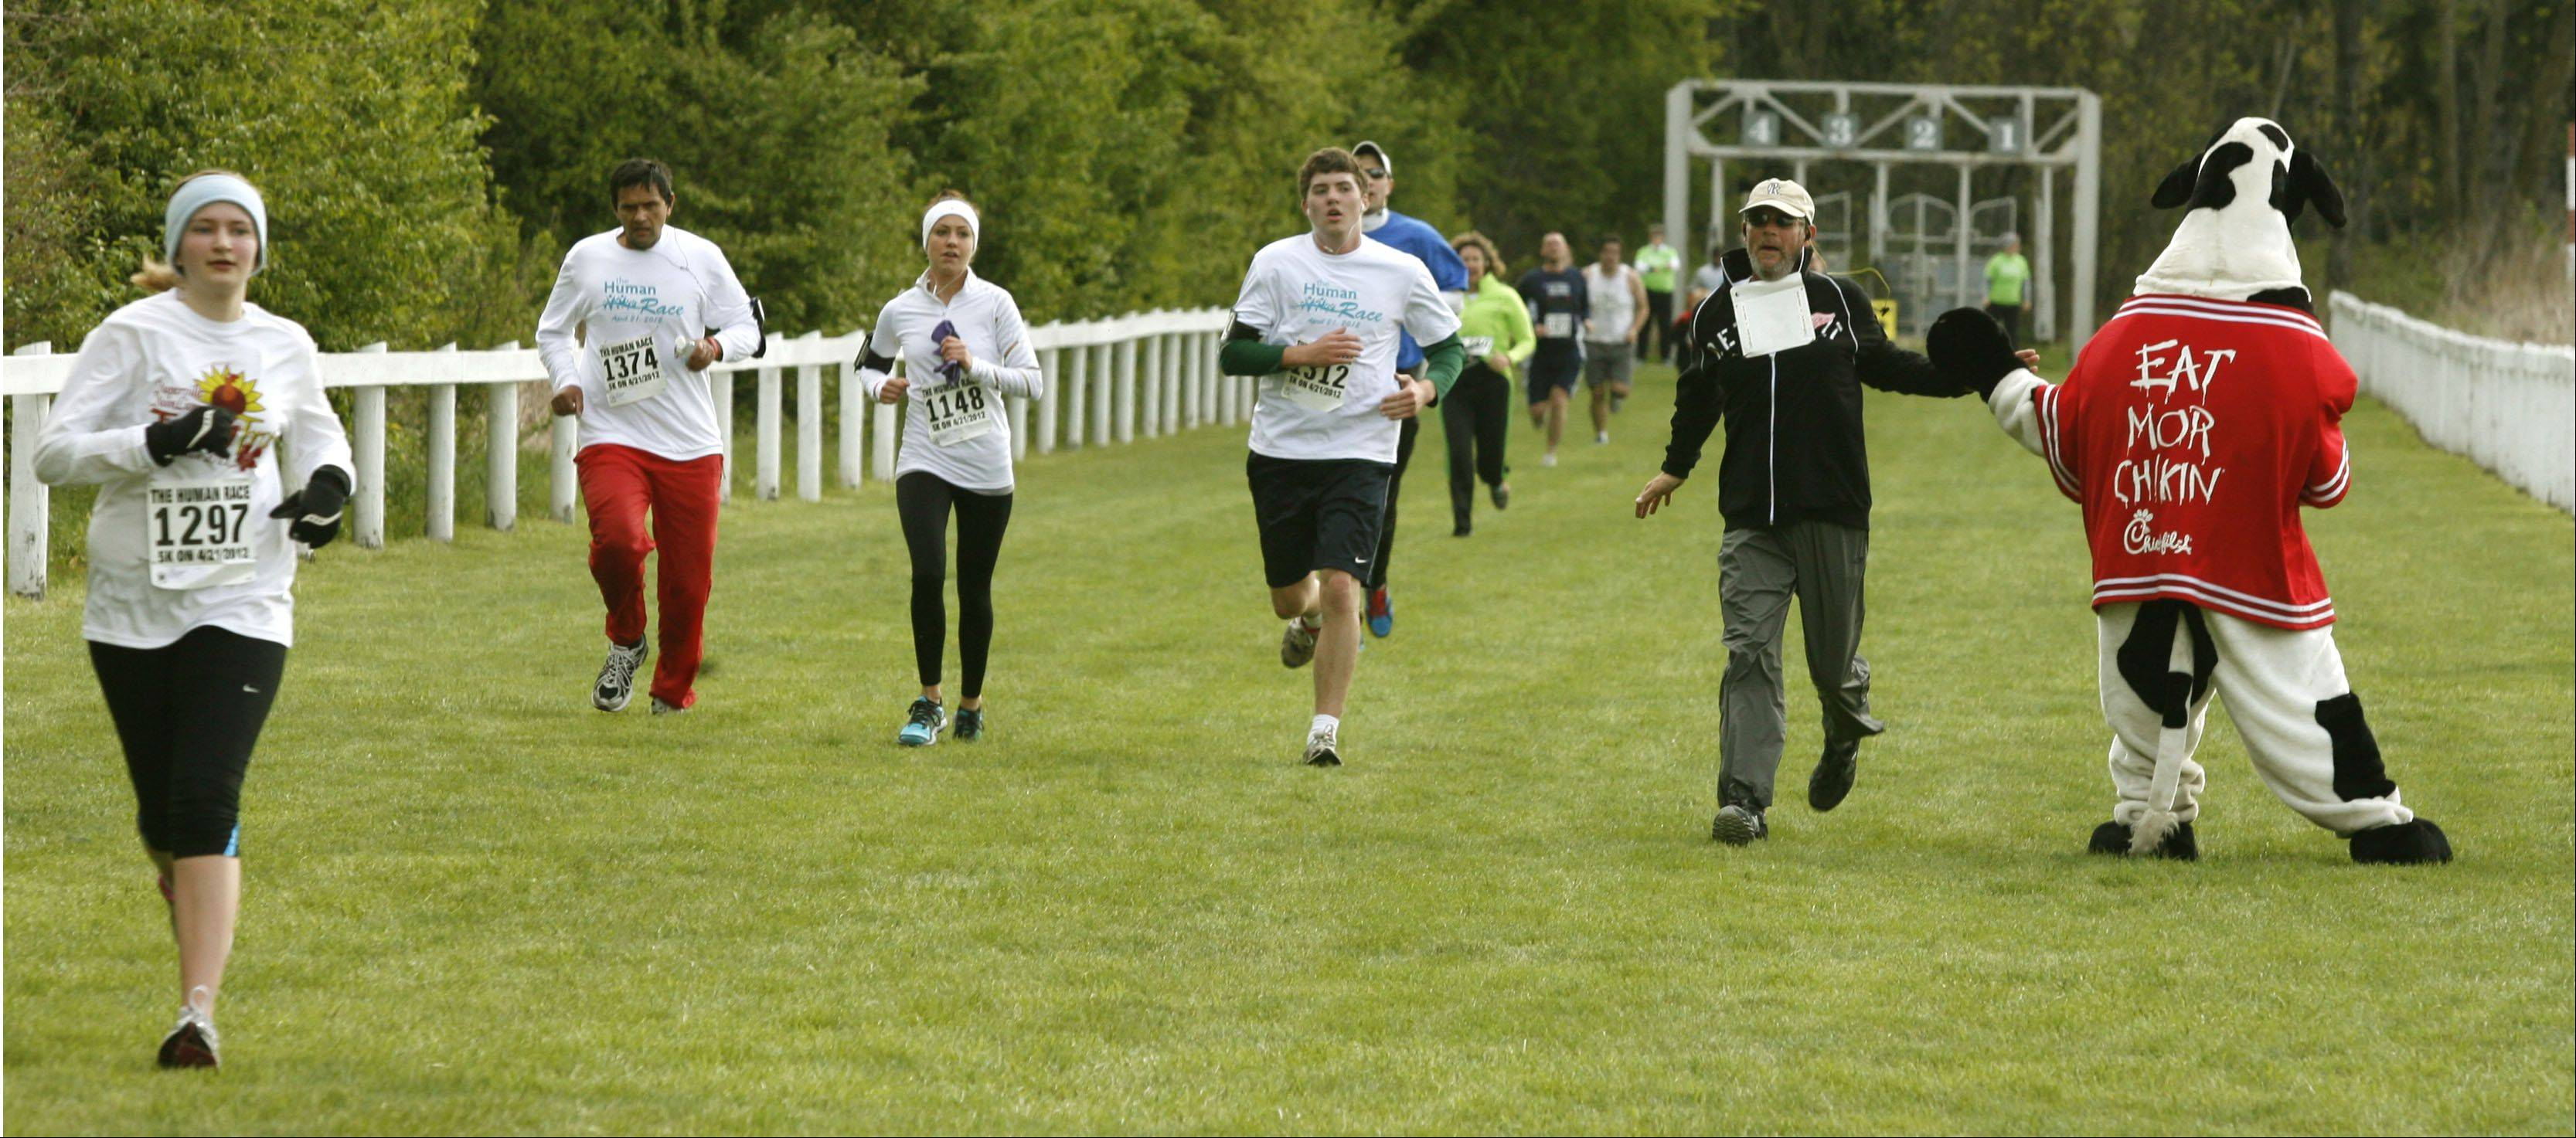 Running along the equestrian track at Danada Forest Preserve in Wheaton, race participants Saturday head to the finish line of the first Human Race, a 5K run and 2-mile walk hosted by Giving DuPage.